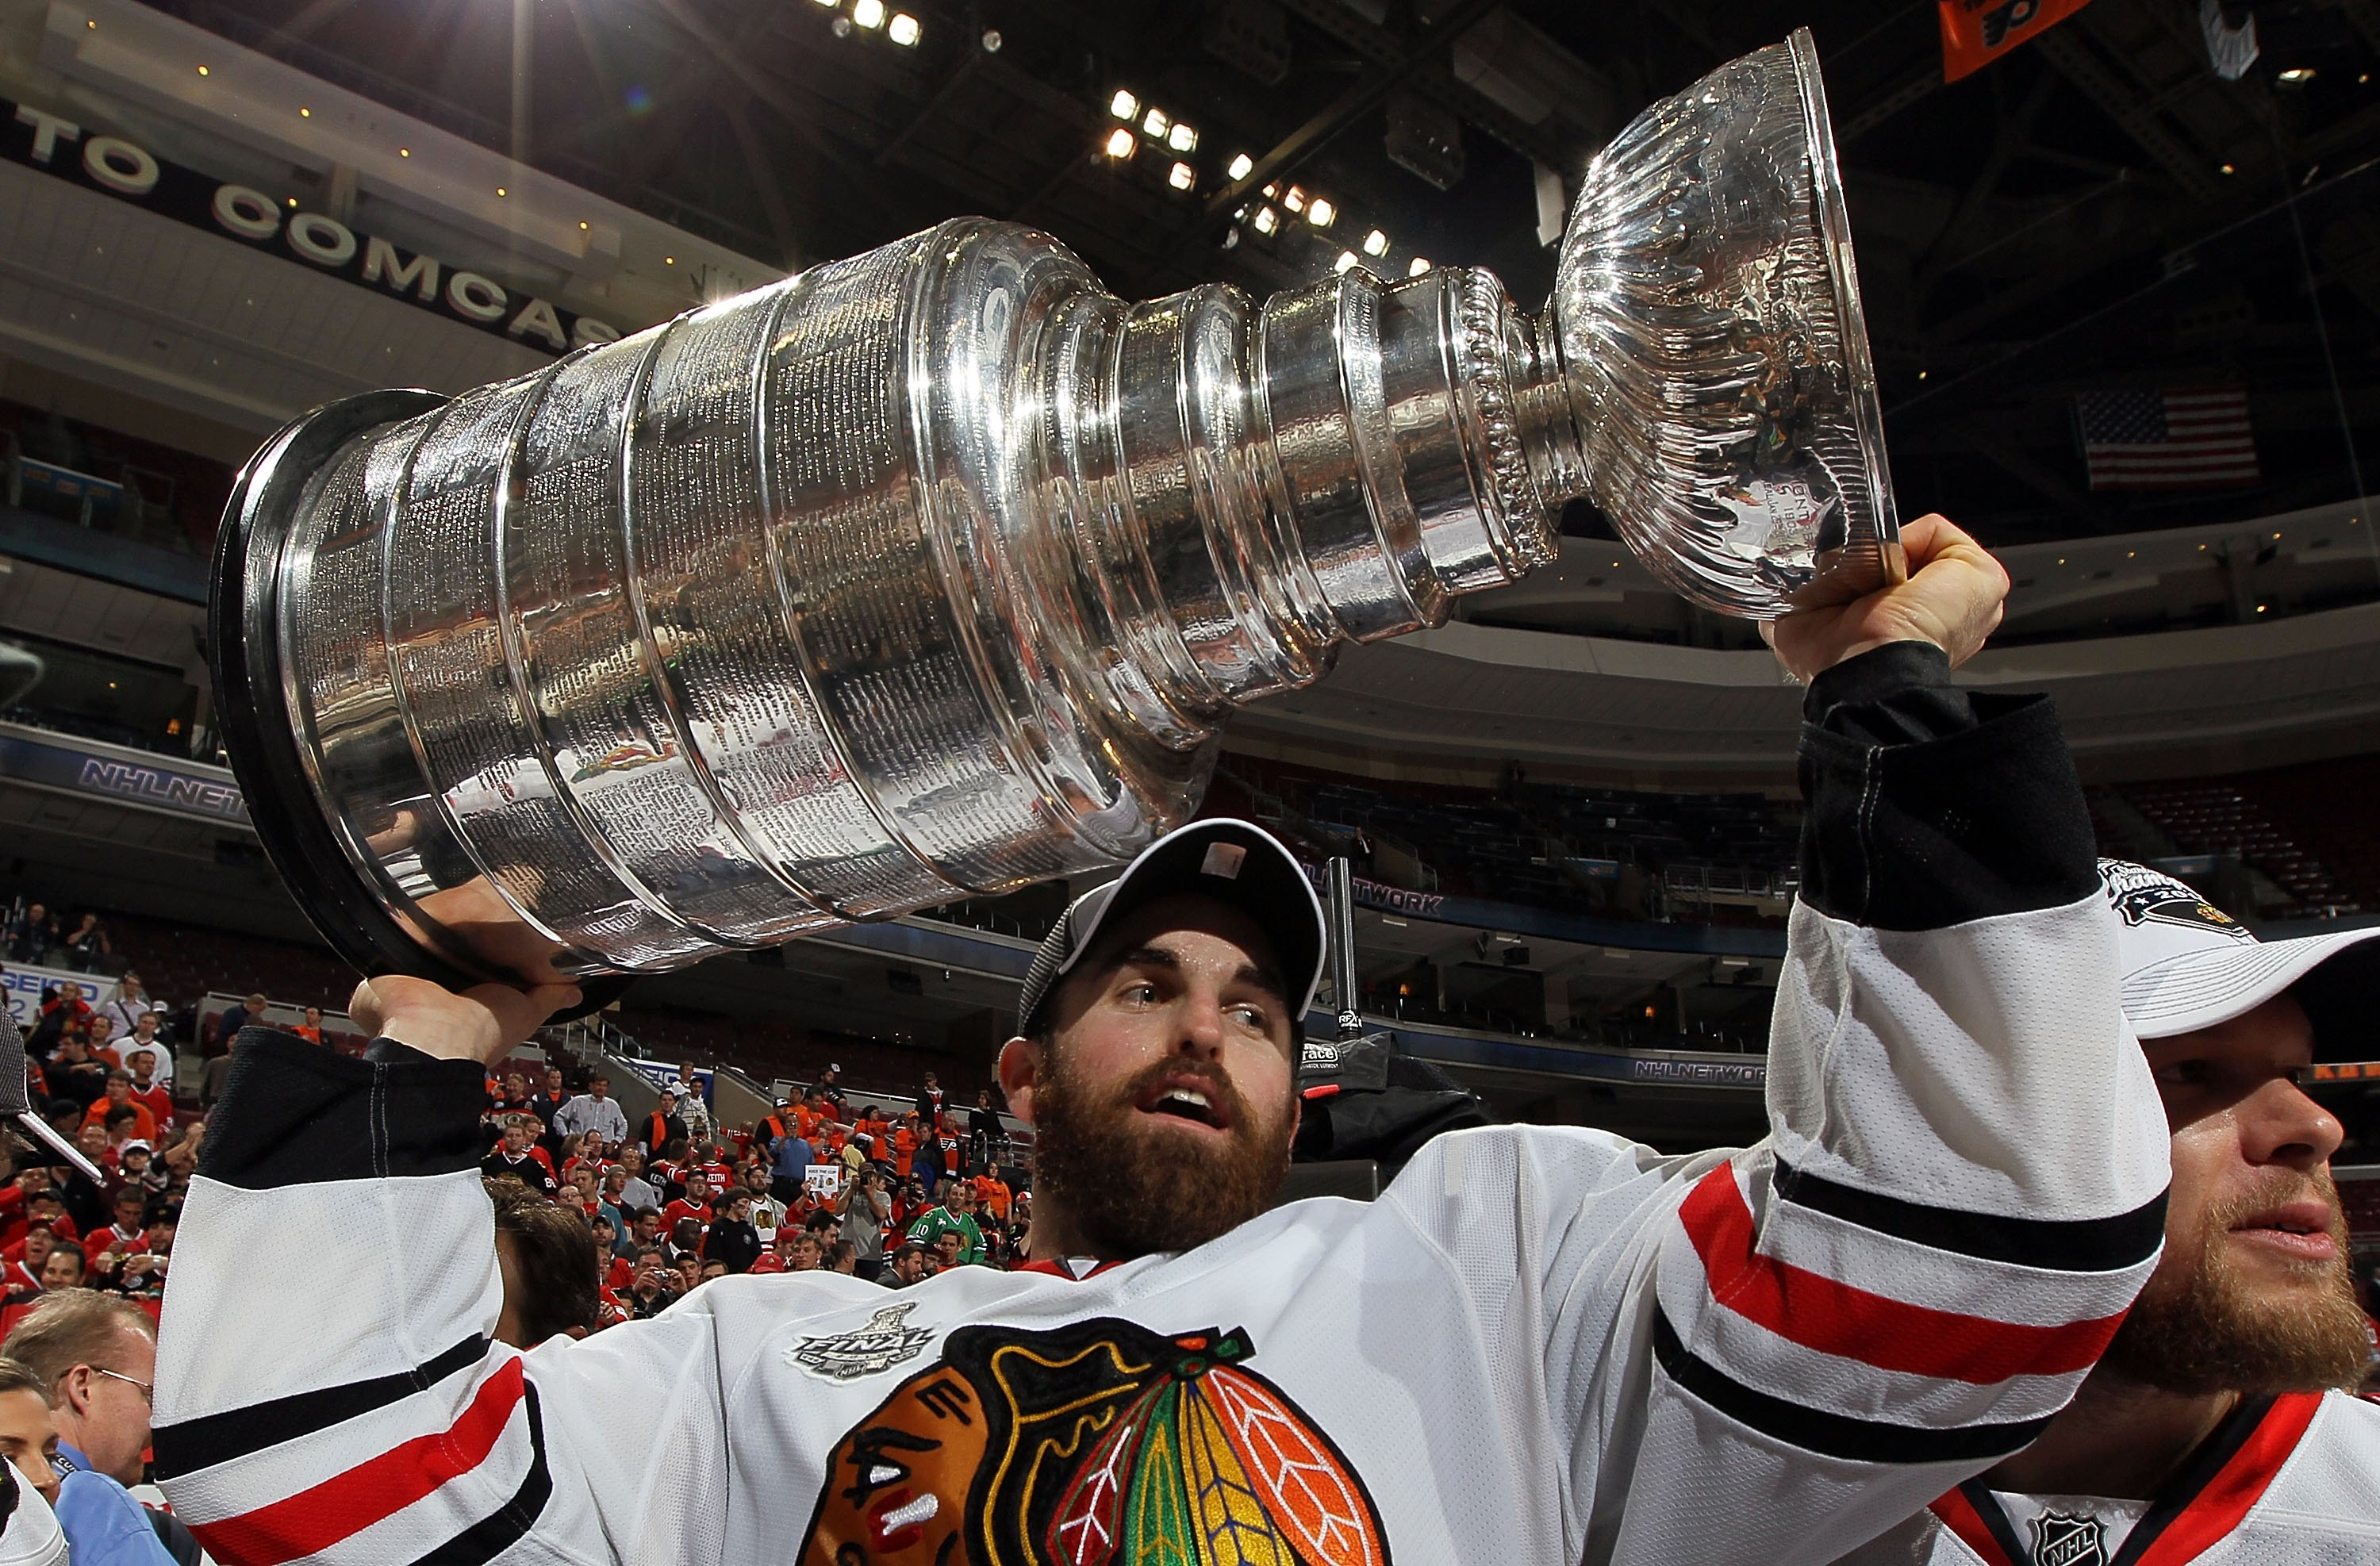 PHILADELPHIA - JUNE 09:  Andrew Ladd #16 of the Chicago Blackhawks hoists the Stanley Cup after teammate Patrick Kane scored the game-winning goal in overtime to defeat the Philadelphia Flyers 4-3 and win the Stanley Cup in Game Six of the 2010 NHL Stanle